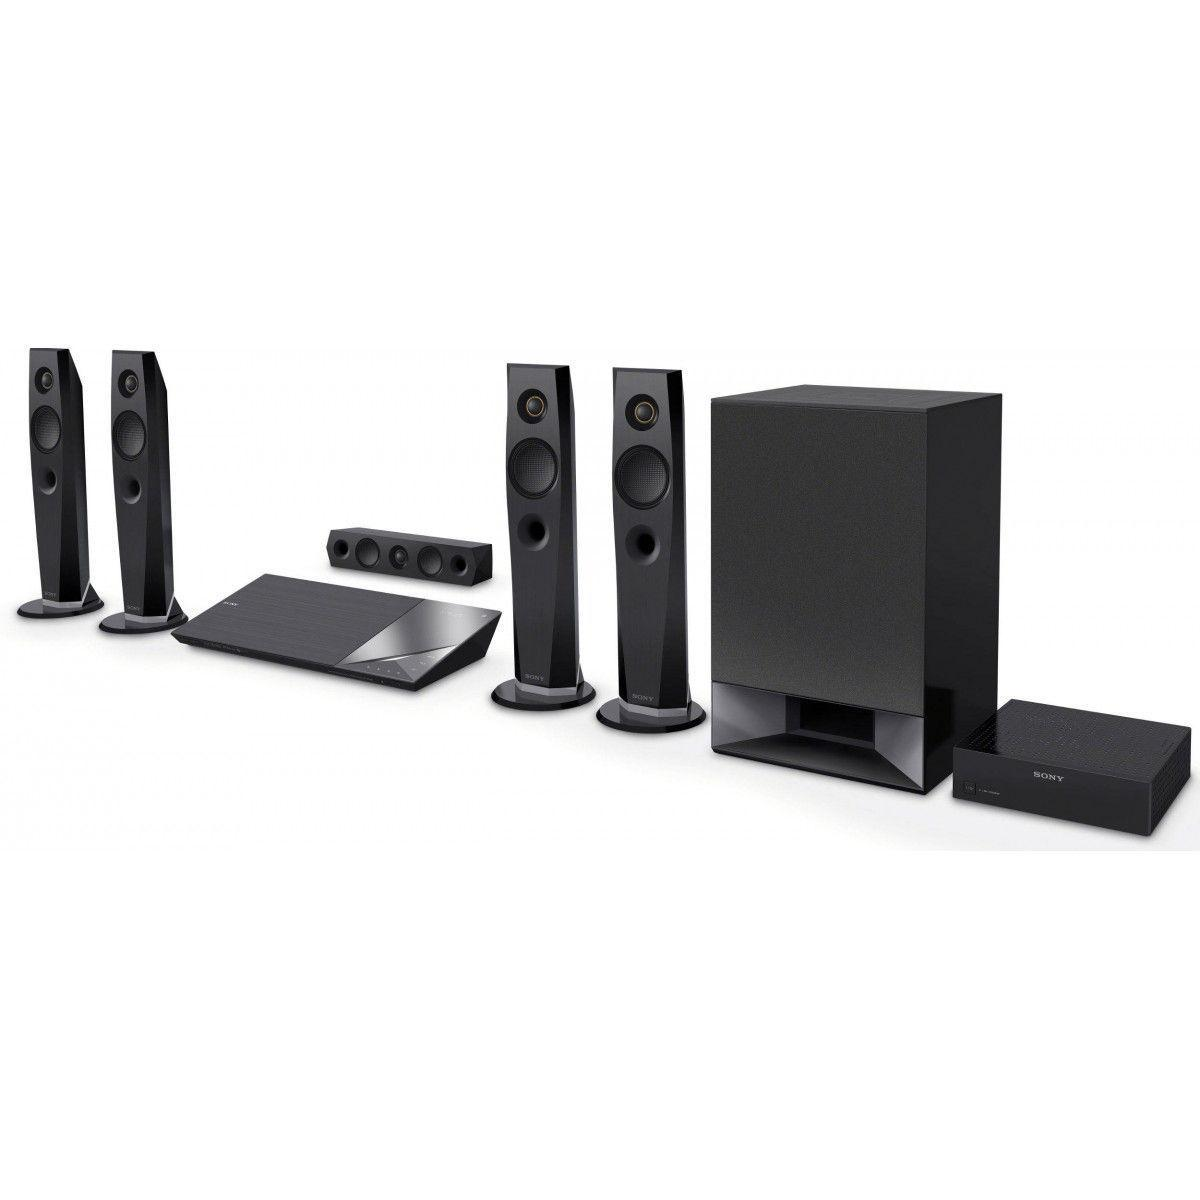 Home cinema blu ray BDVN 7200 WB